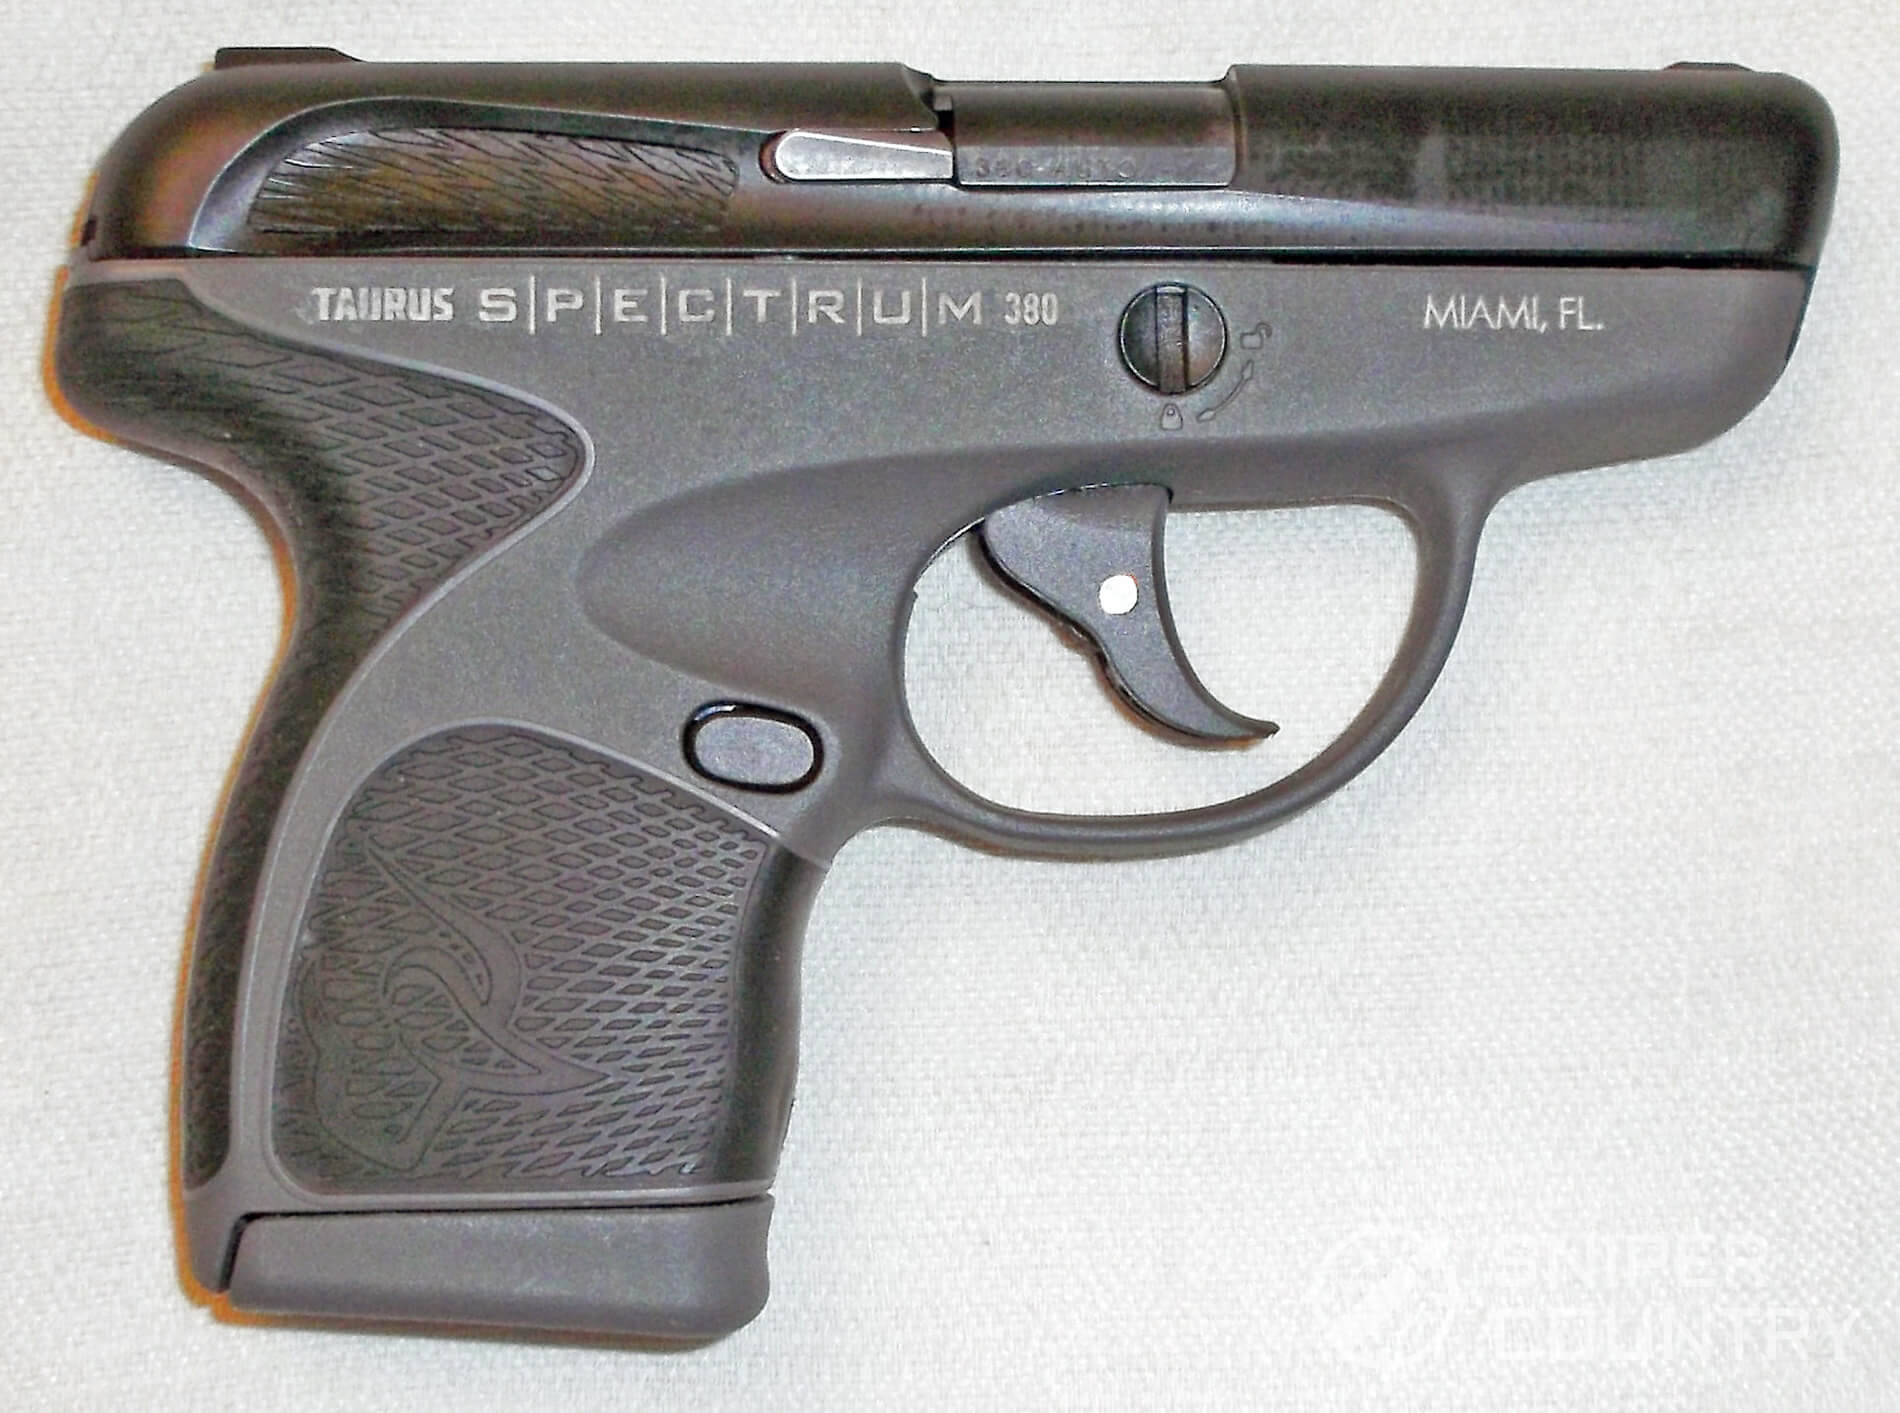 Taurus Spectrum right side